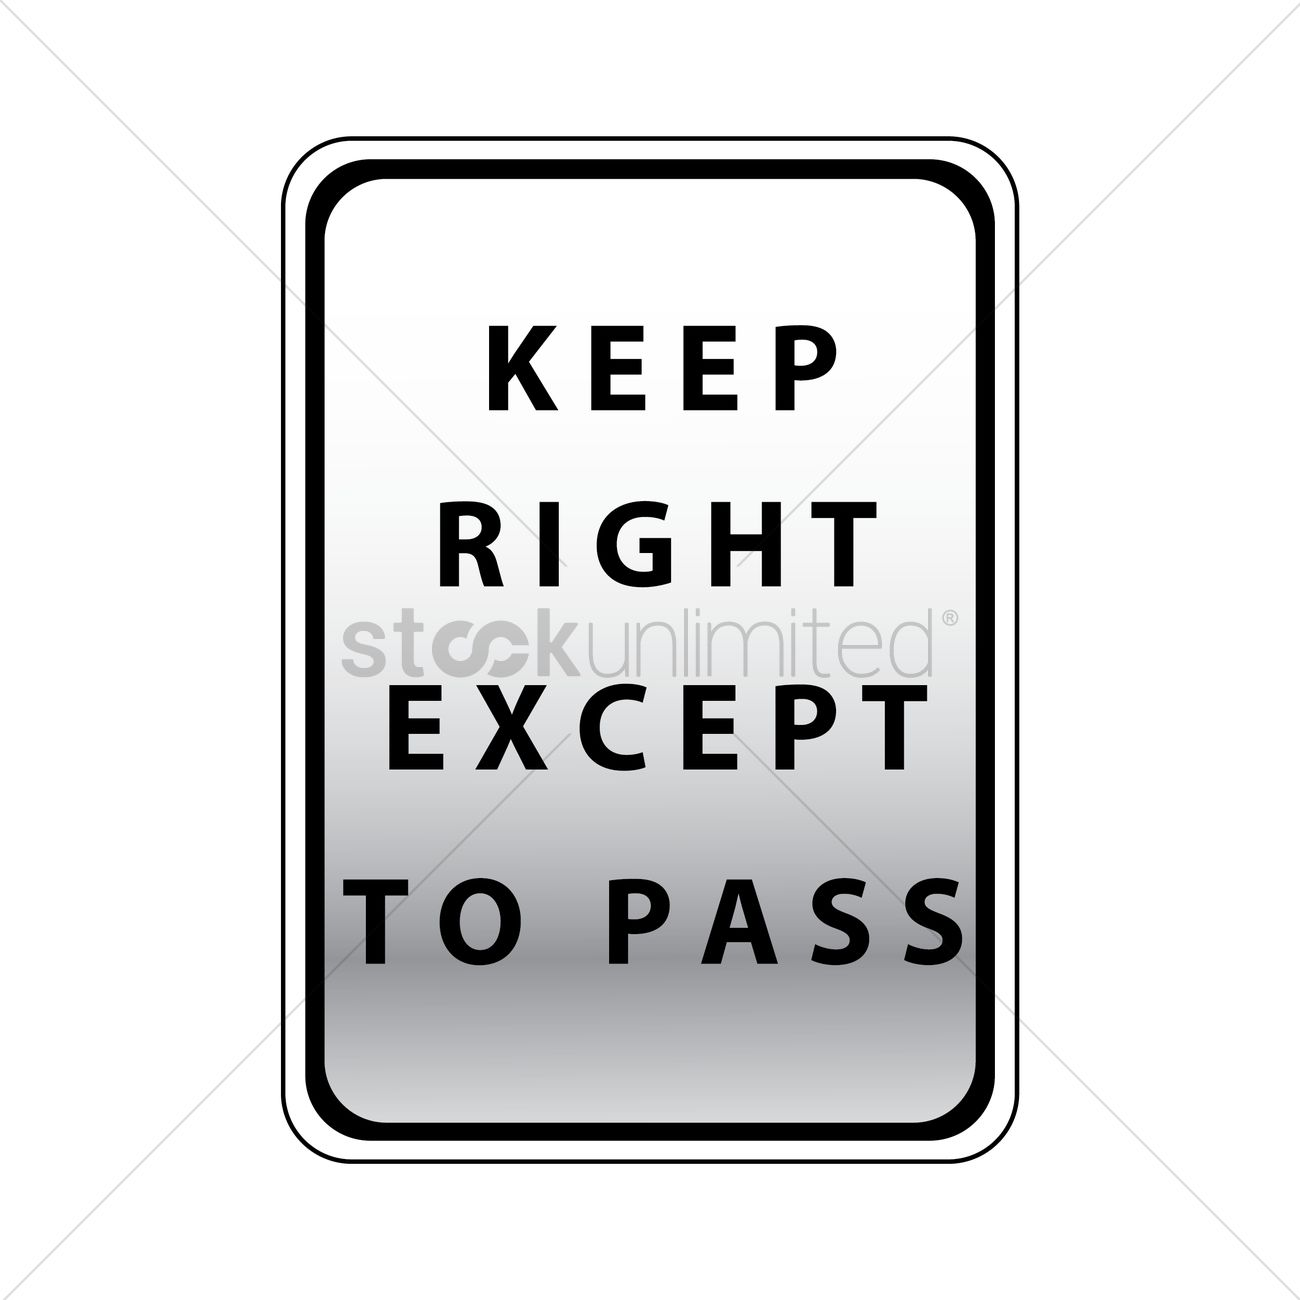 Keep right except to pass road sign Vector Image.